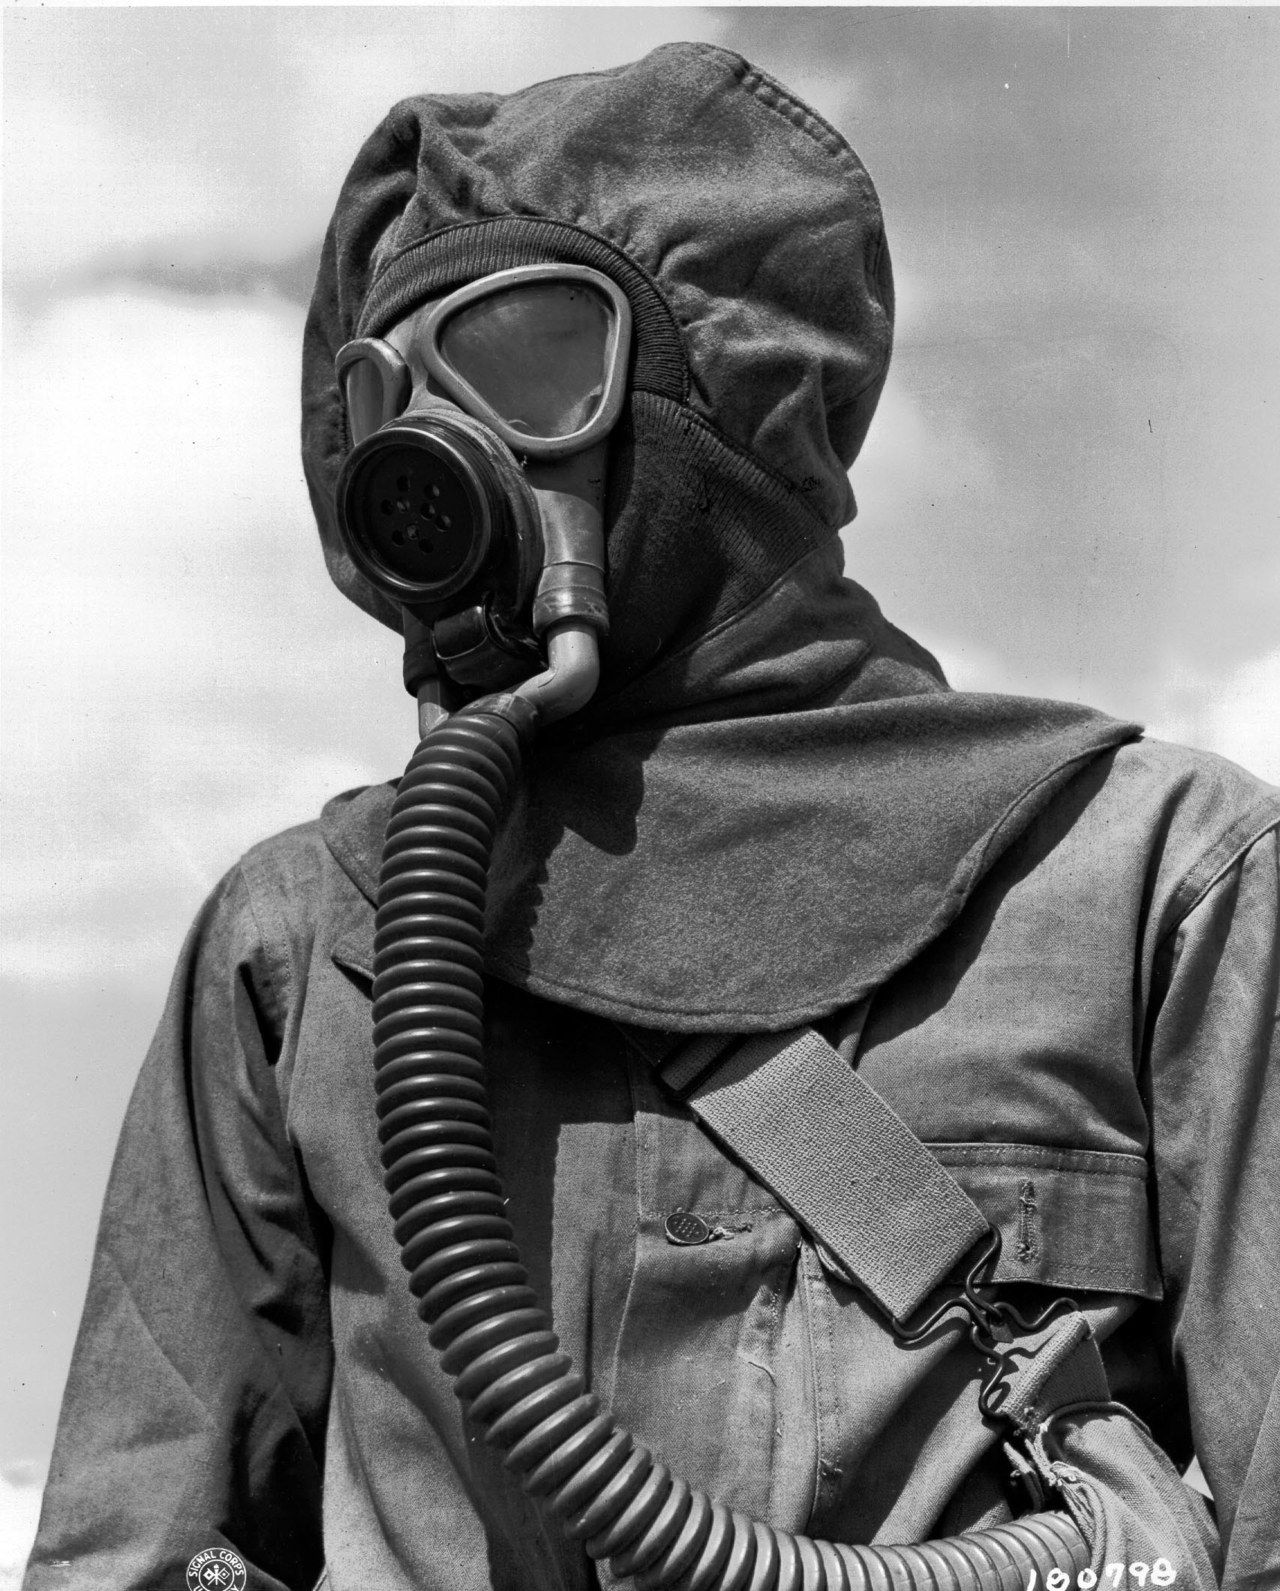 chemical weapons during the vietnam war history essay Vietnam, the open-sea burial of chemical munitions in the  developed as strategic weapons during world war  development and production in us history.